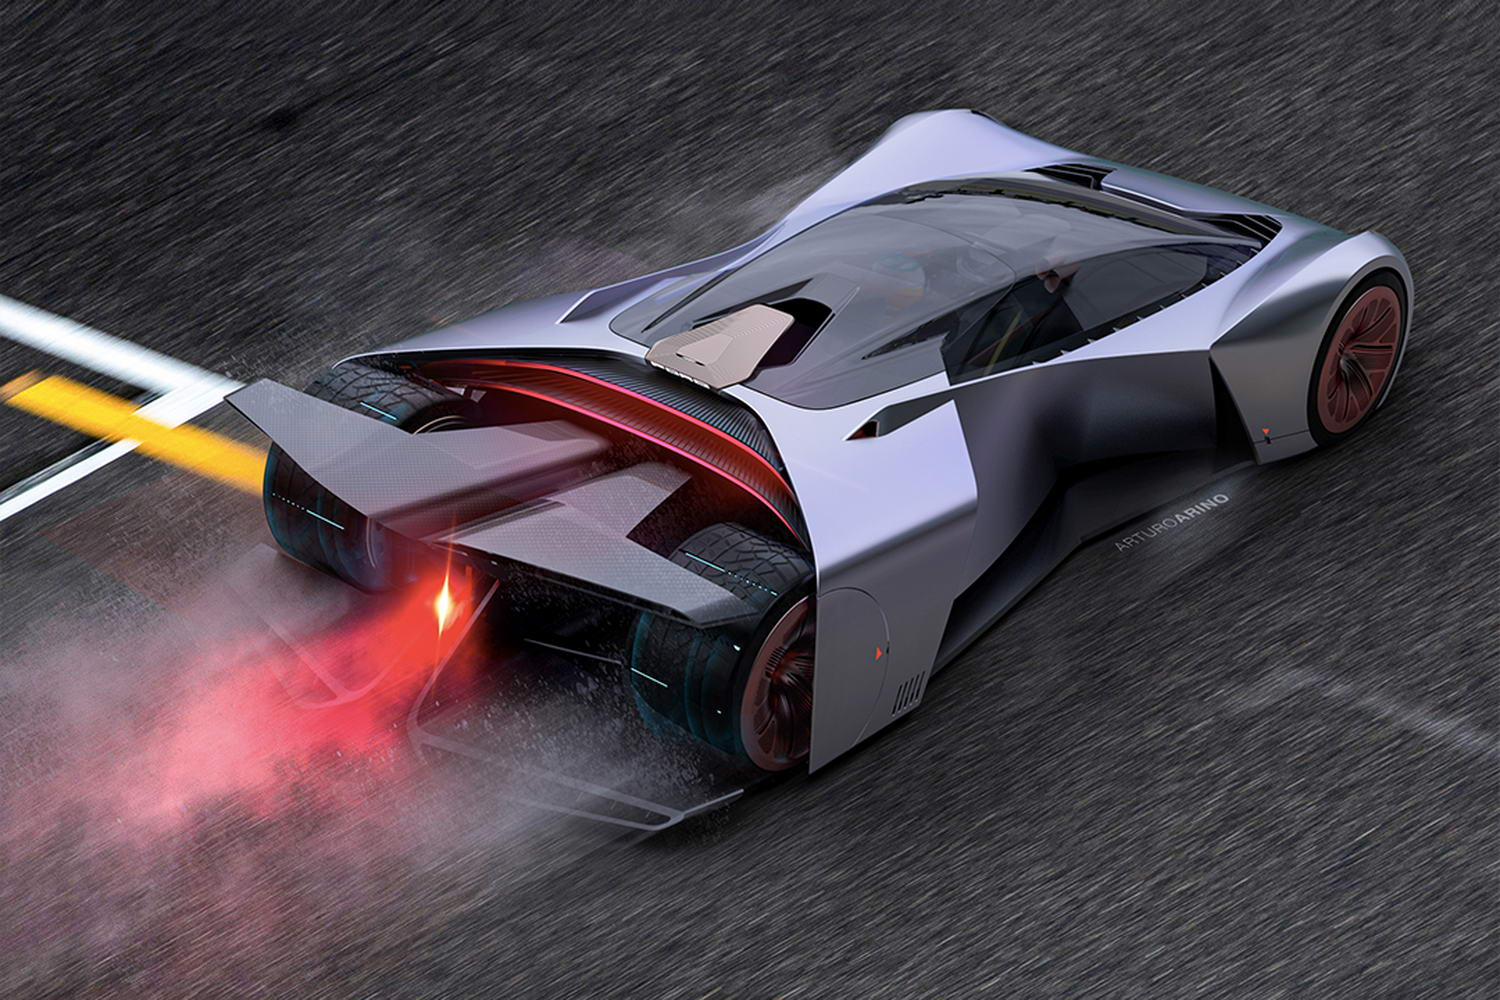 Car News | Ford shows off Team Fordzilla P1 virtual racer | CompleteCar.ie